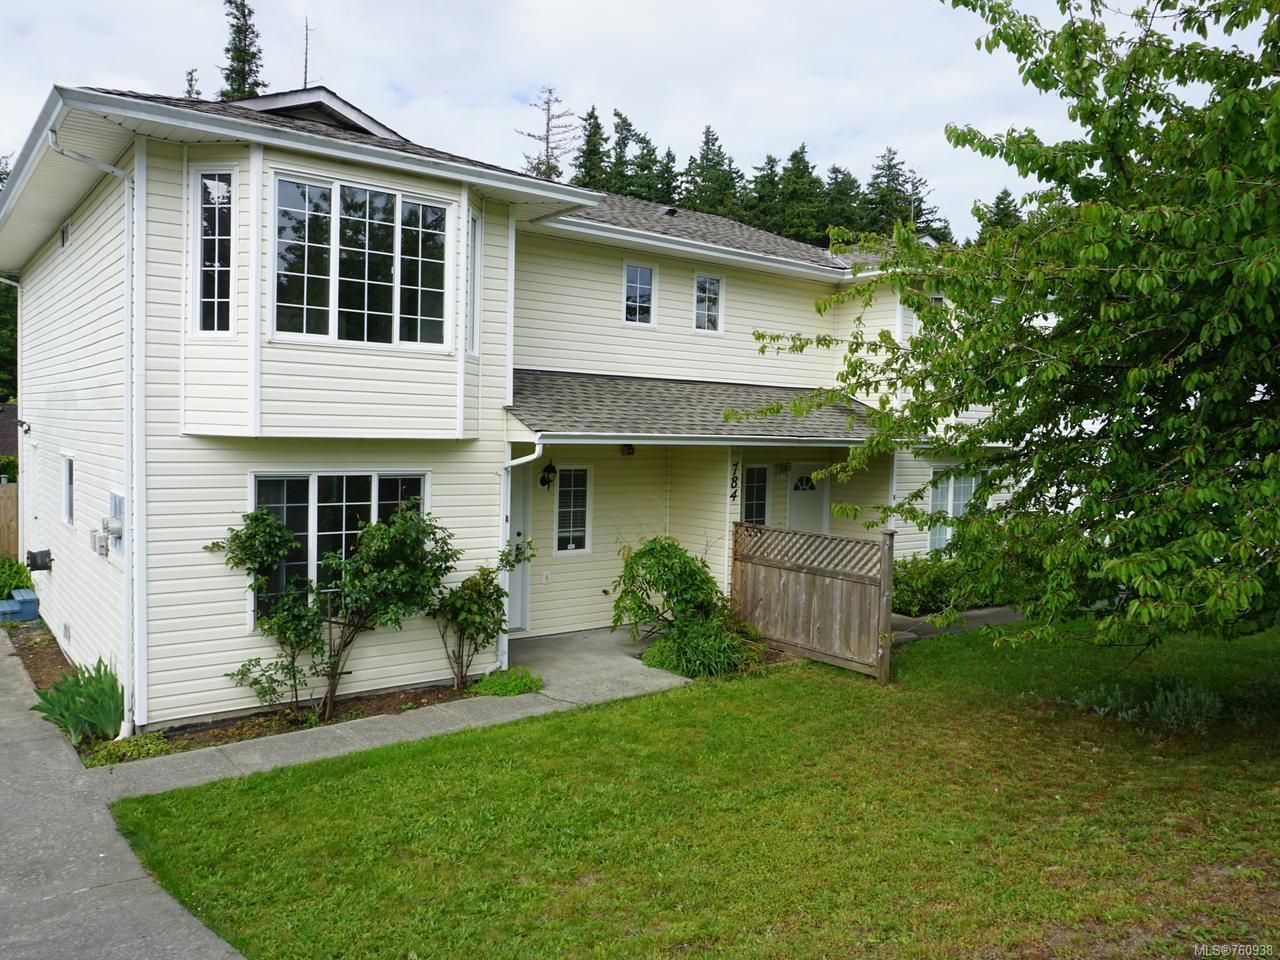 Main Photo: A 784 BEAVER LODGE ROAD in CAMPBELL RIVER: CR Campbell River Central Half Duplex for sale (Campbell River)  : MLS®# 760938